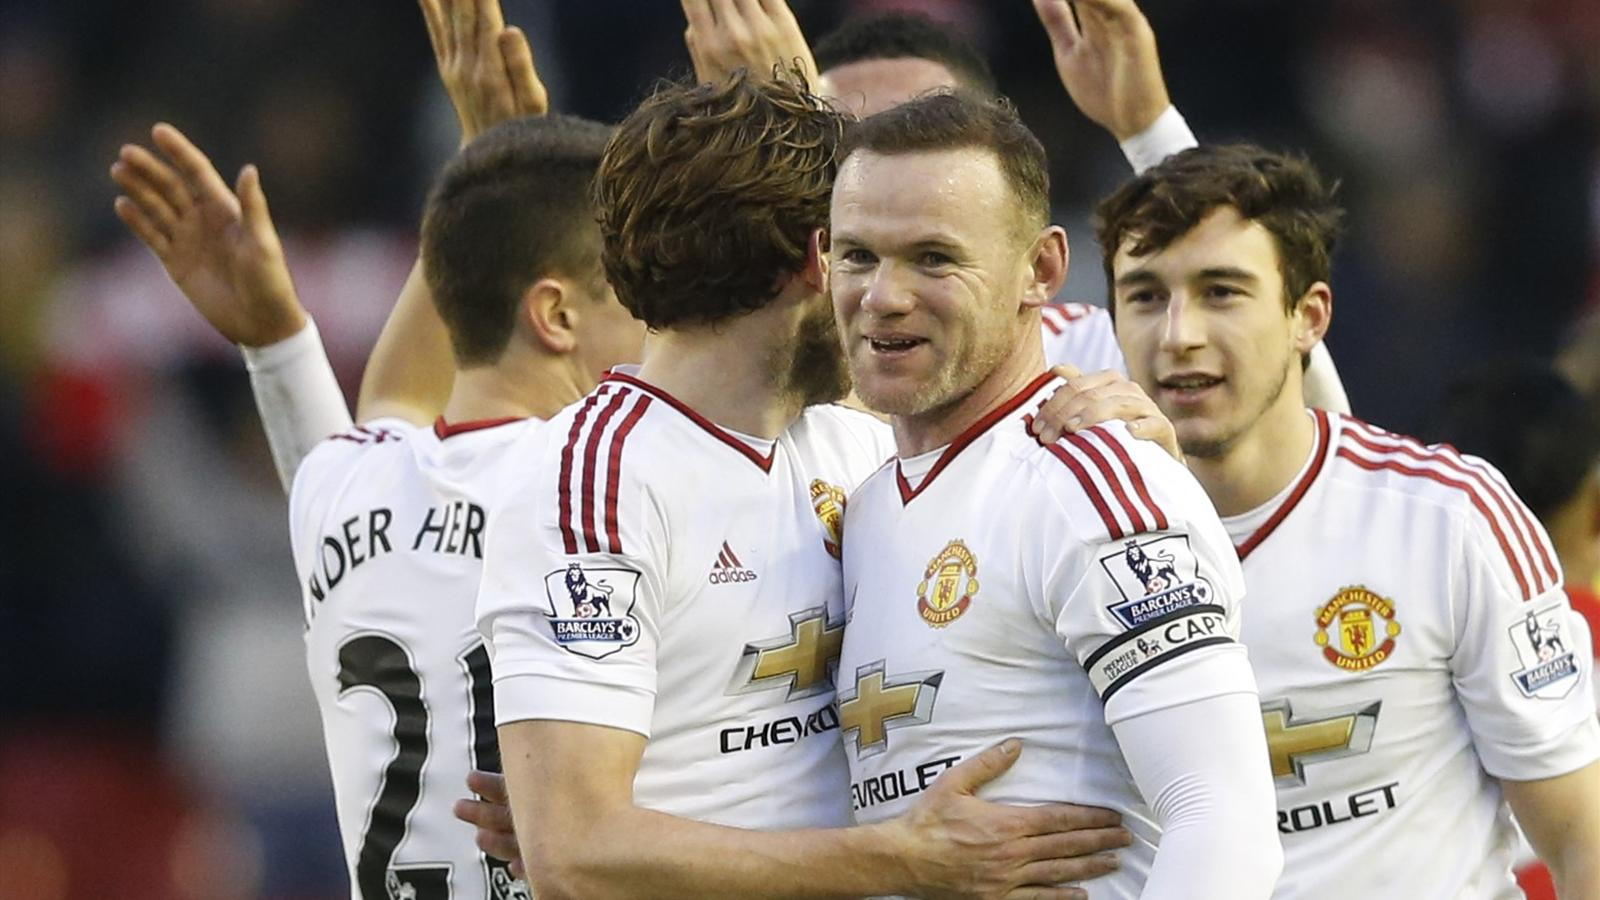 Manchester United's Wayne Rooney celebrates at full time with teammates